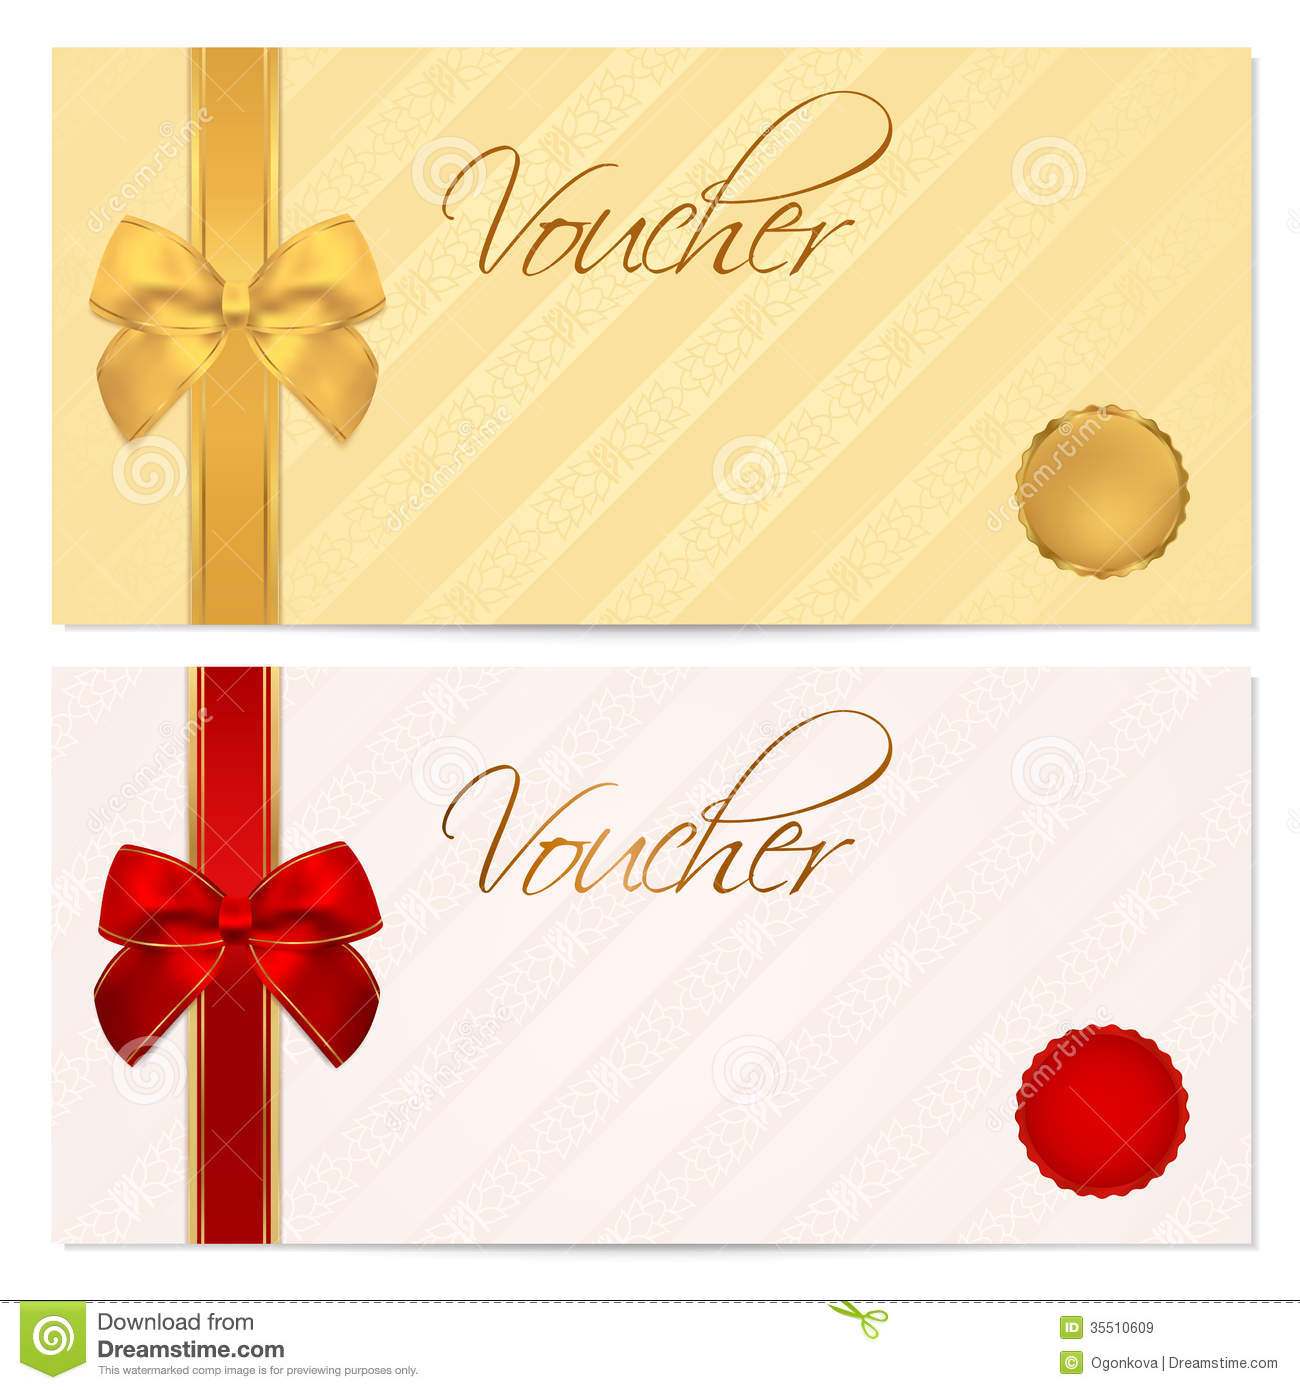 Voucher Gift Certificate Coupon Template Bow Royalty Free – Template for a Voucher